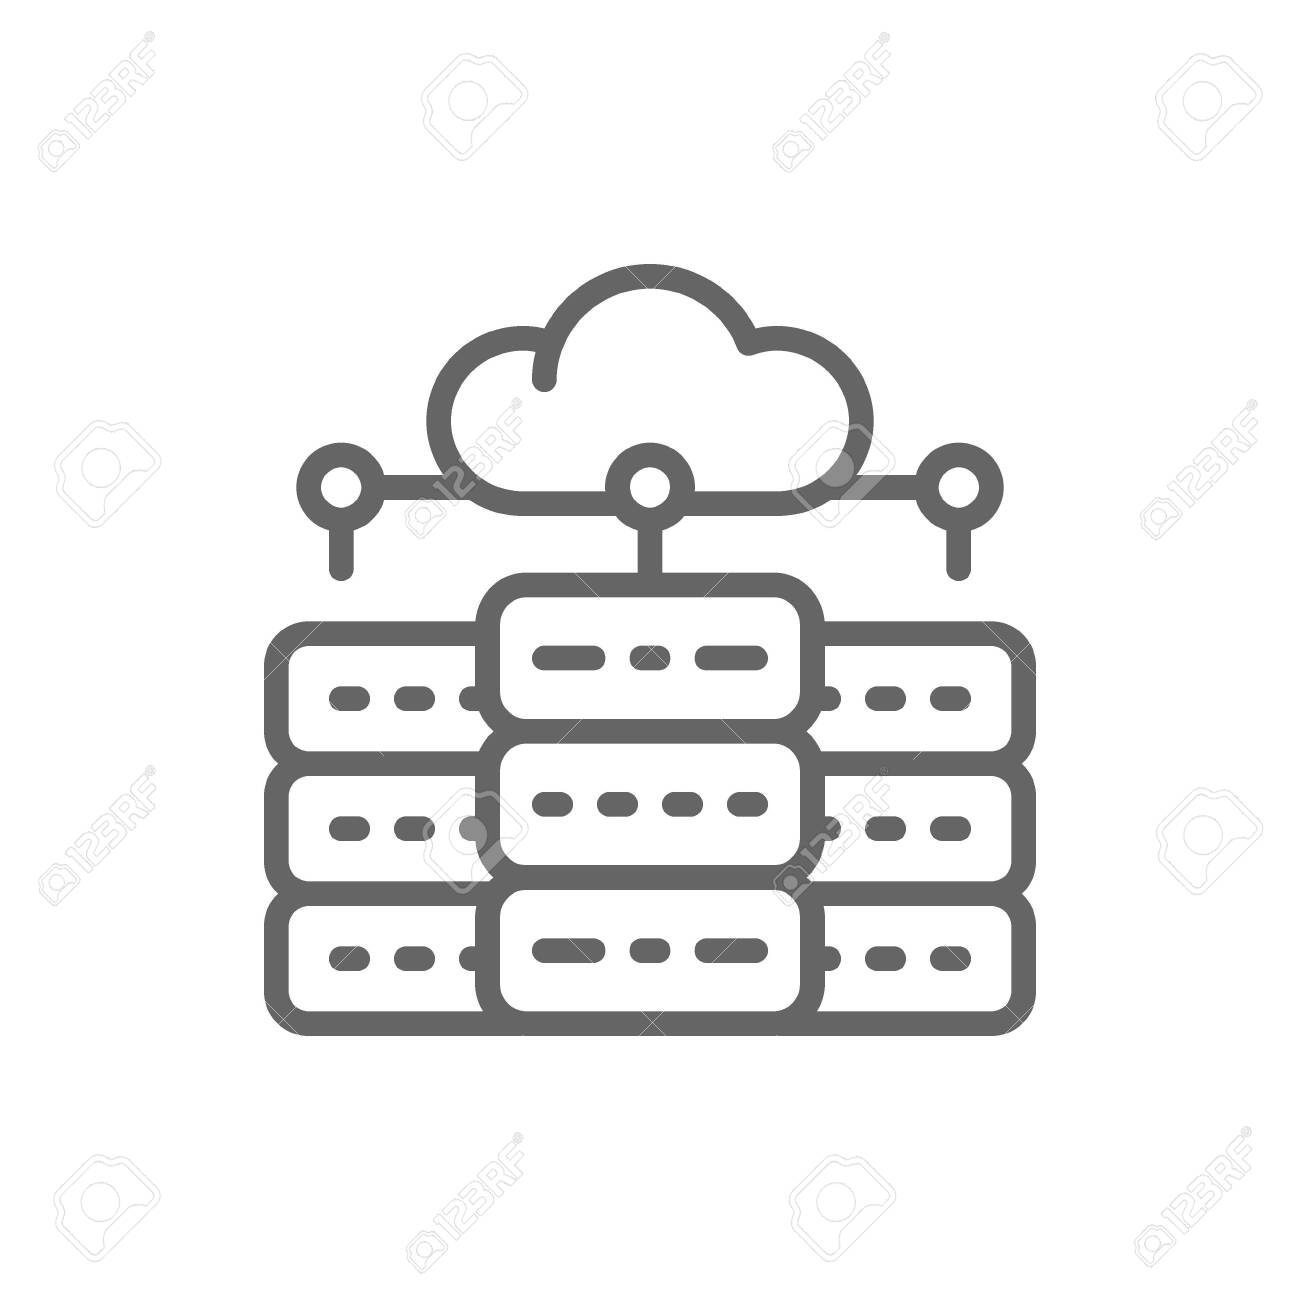 Vector web hosting server, data centre, distributed database line icon. Symbol and sign illustration design. Isolated on white background - 122910441